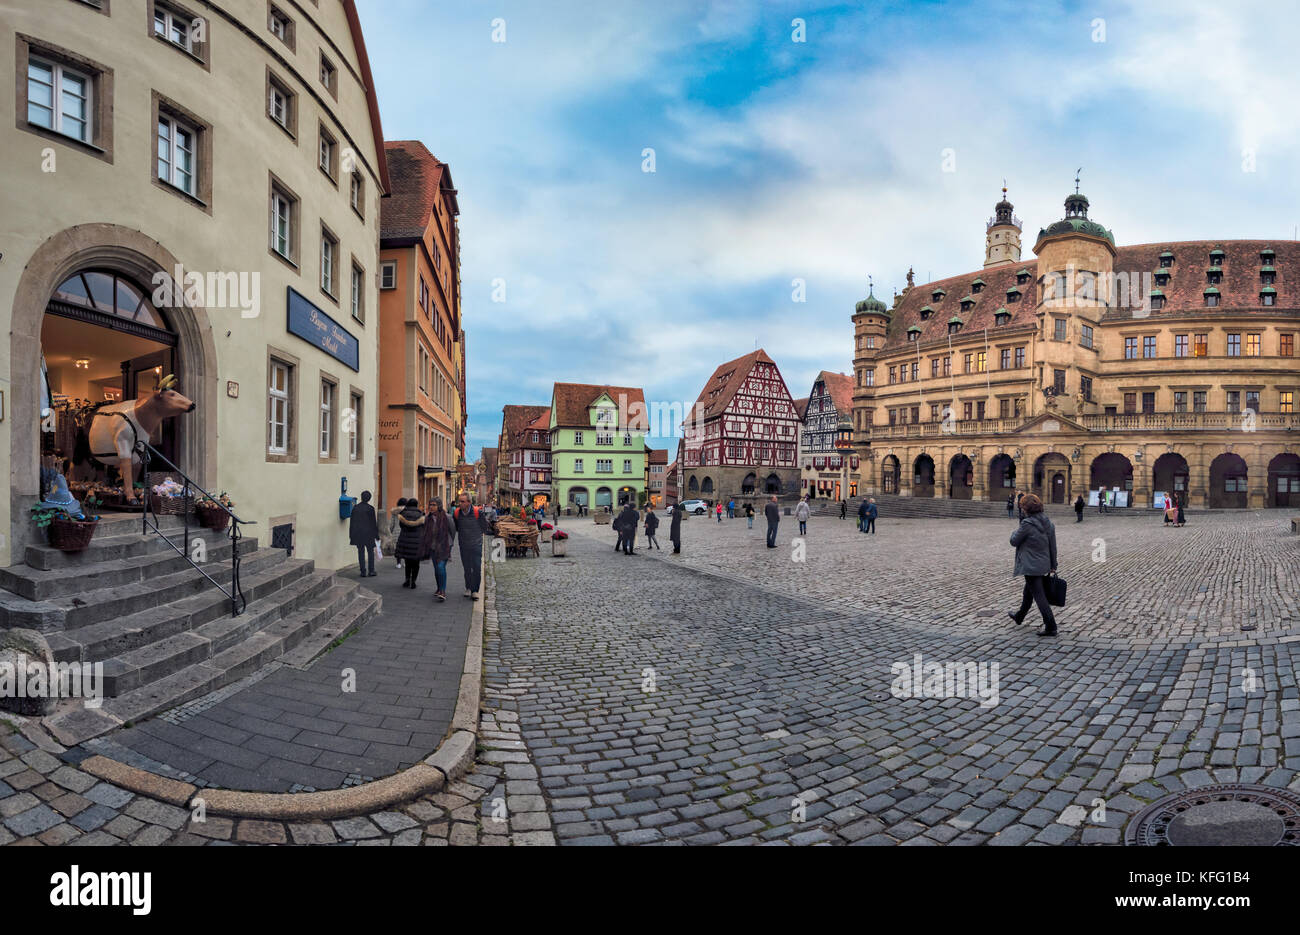 ROTHENBURG, GERMANY - OCTOBER 24, 2017: Unidentified tourists enjoy a sightseeing tour across the historic marketplace - Stock Image